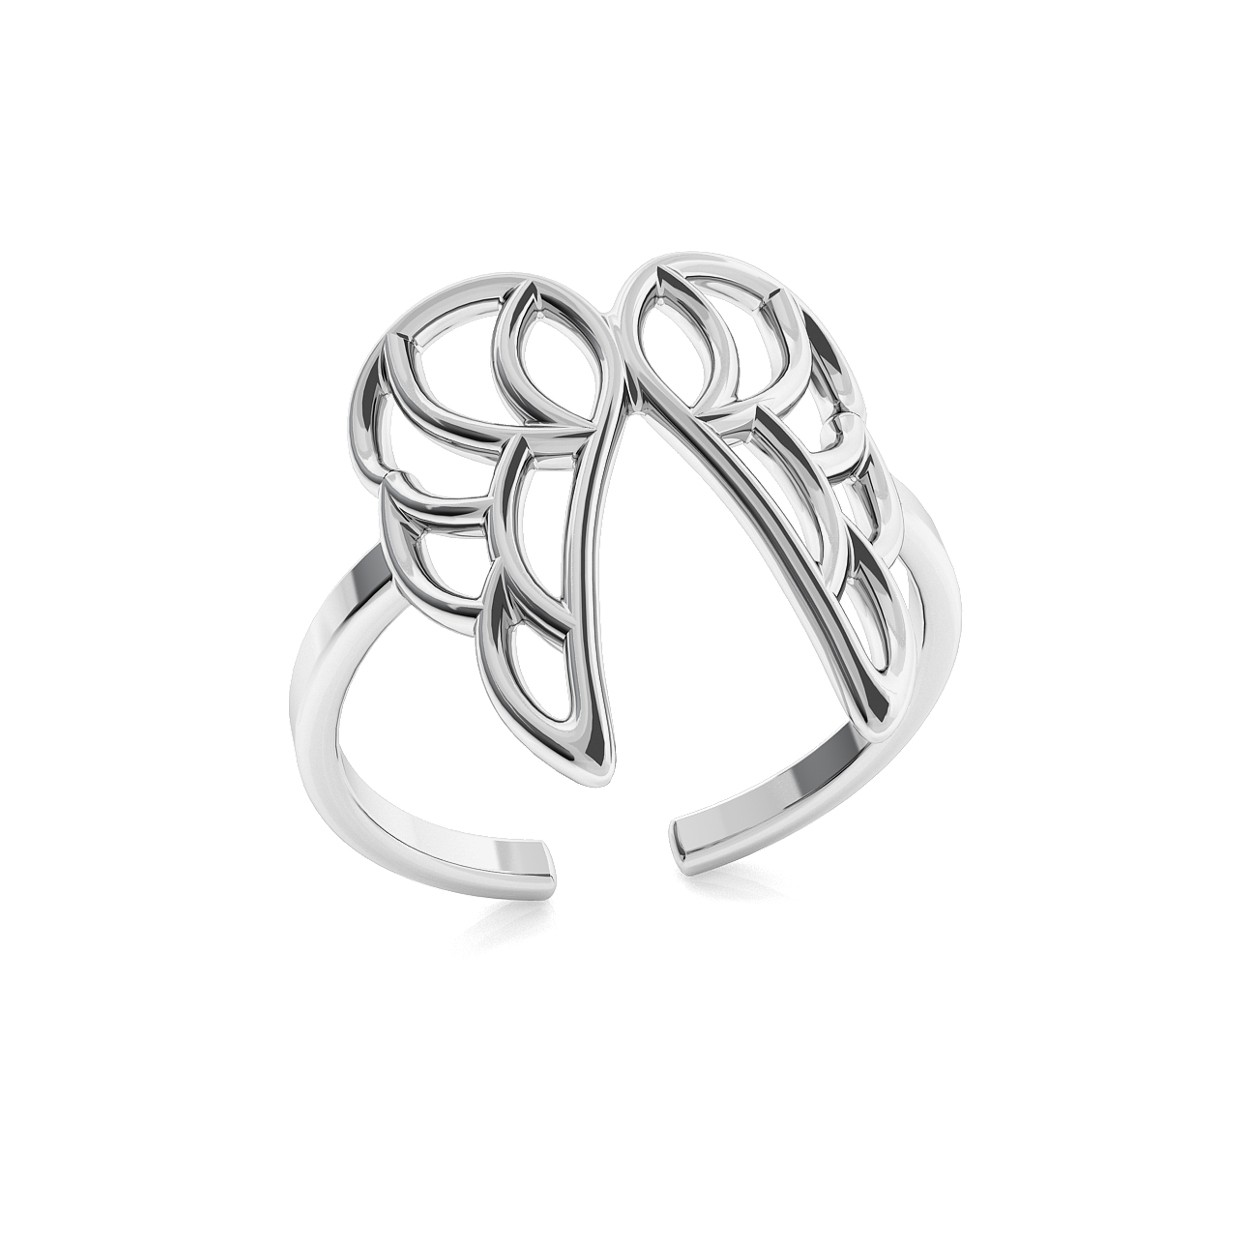 HEART RING, SILVER 925